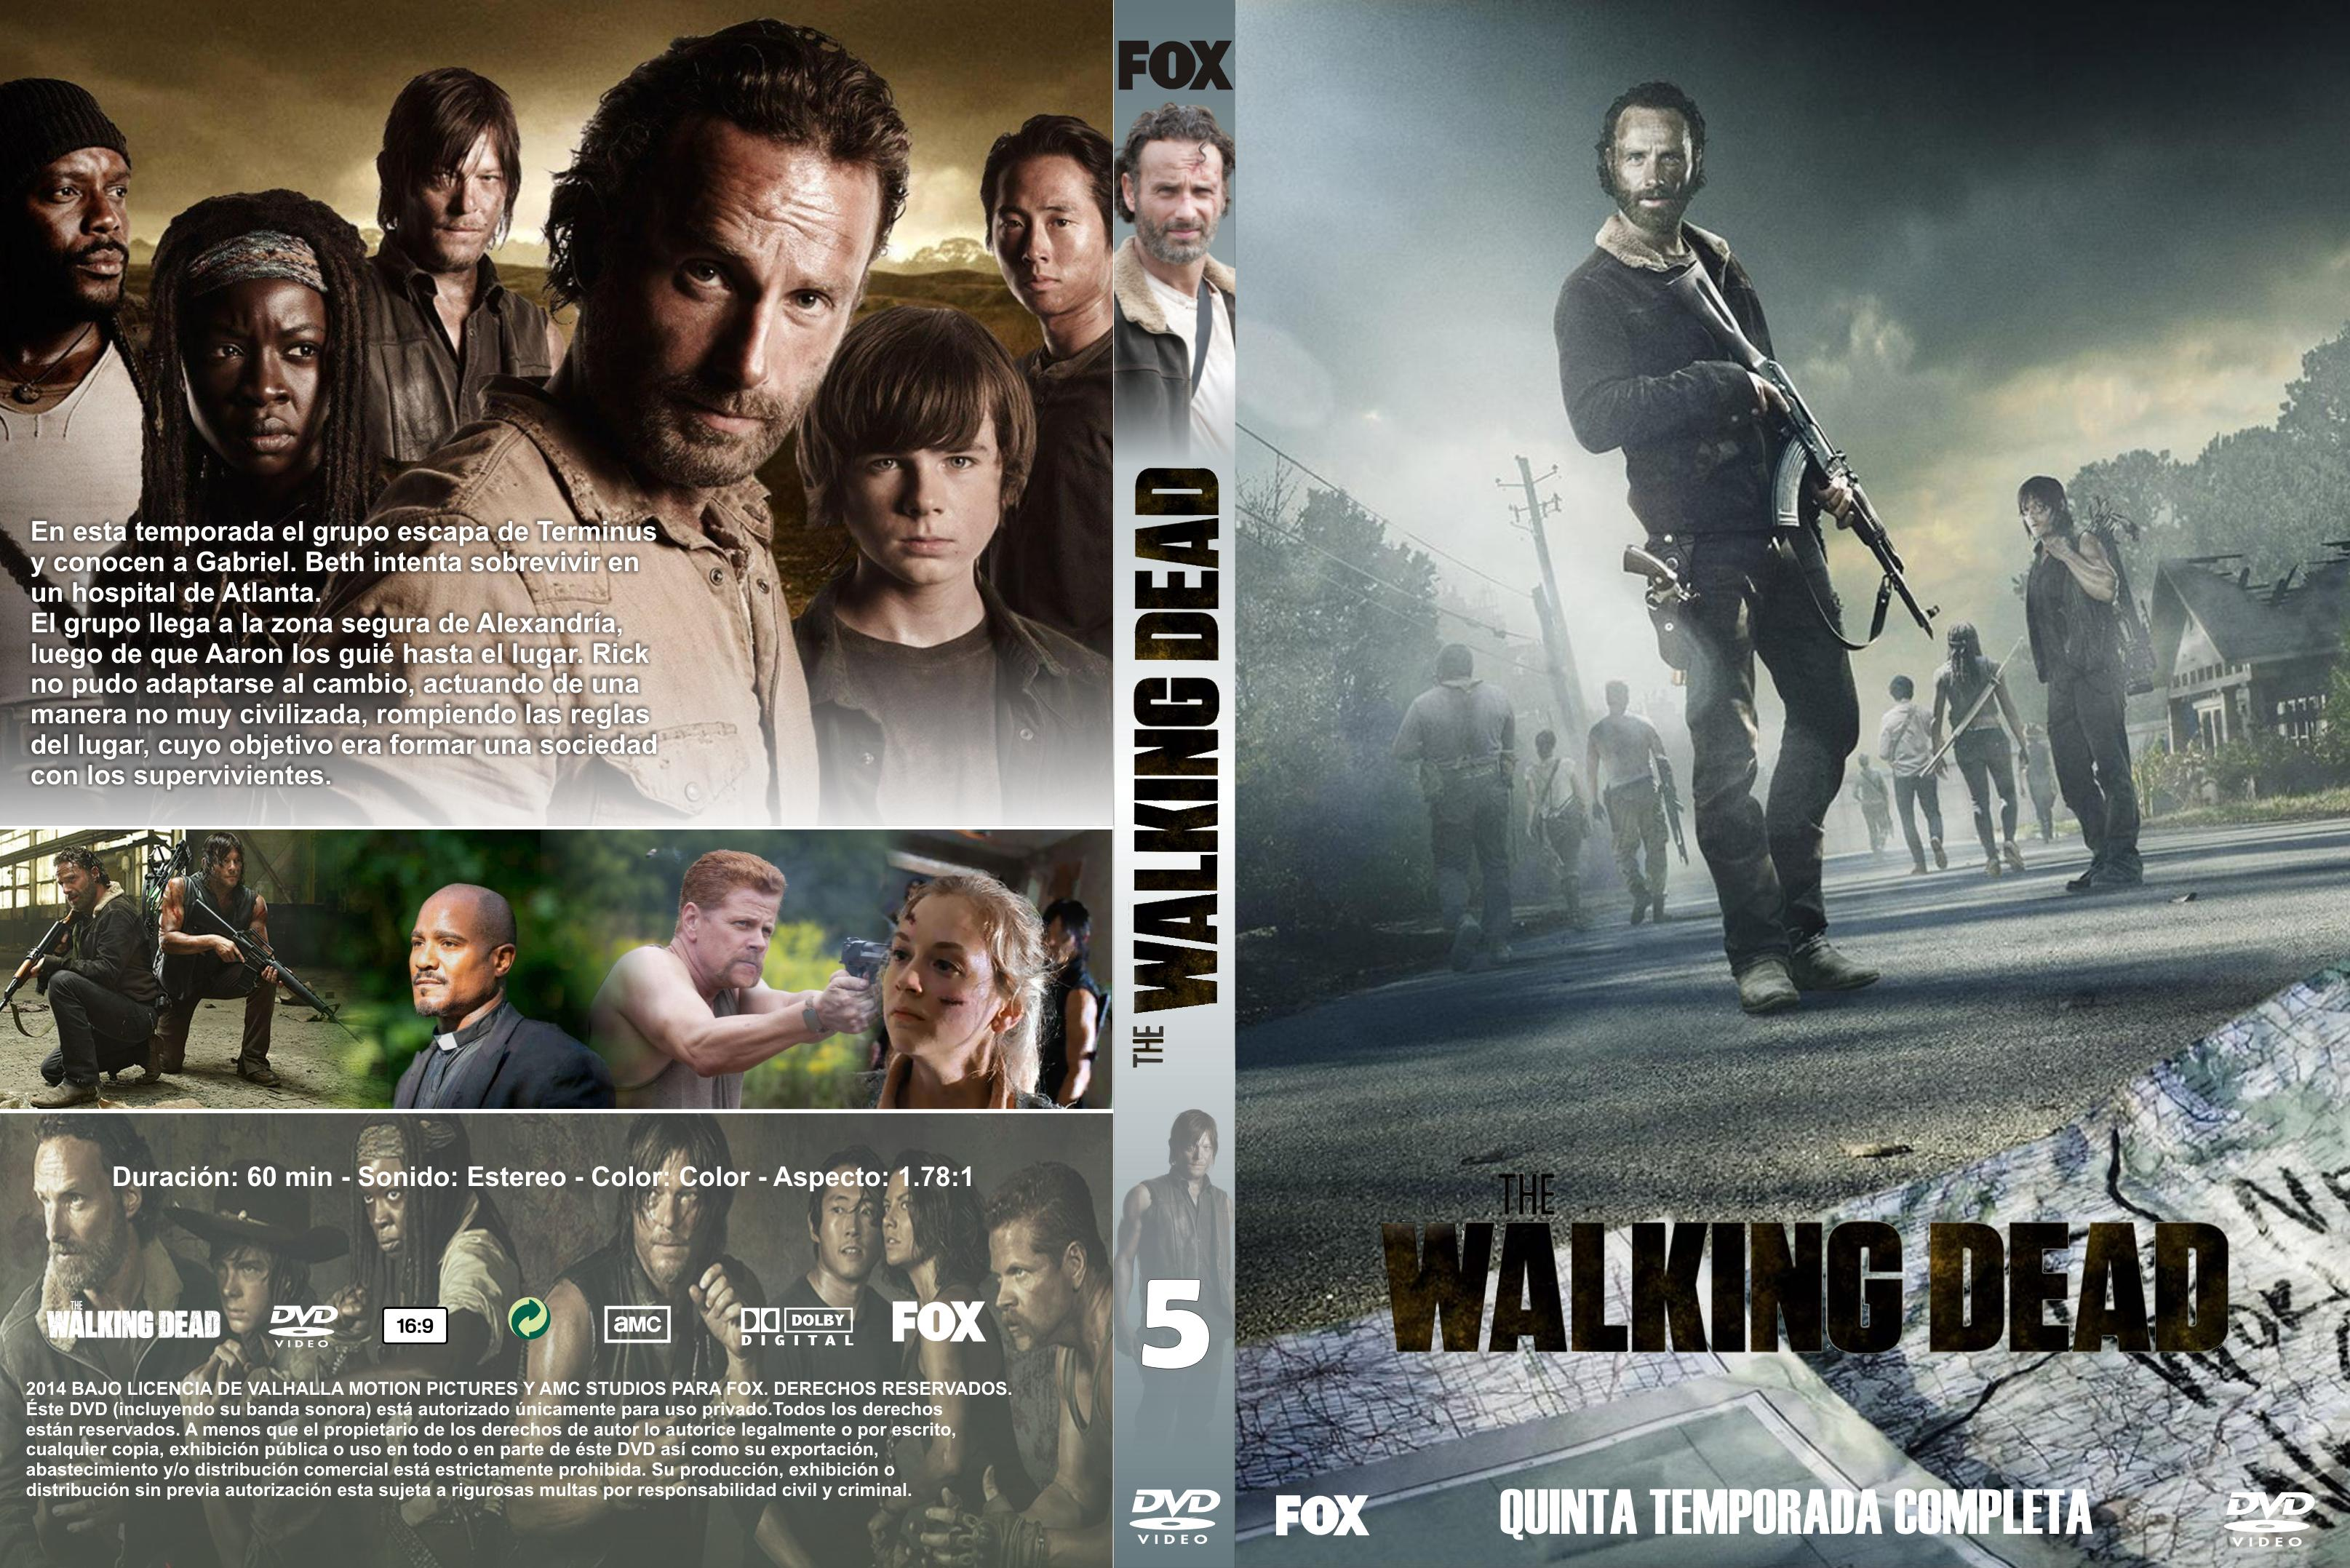 Ver serie completa de the walking dead cuarta temporada - Gary ...